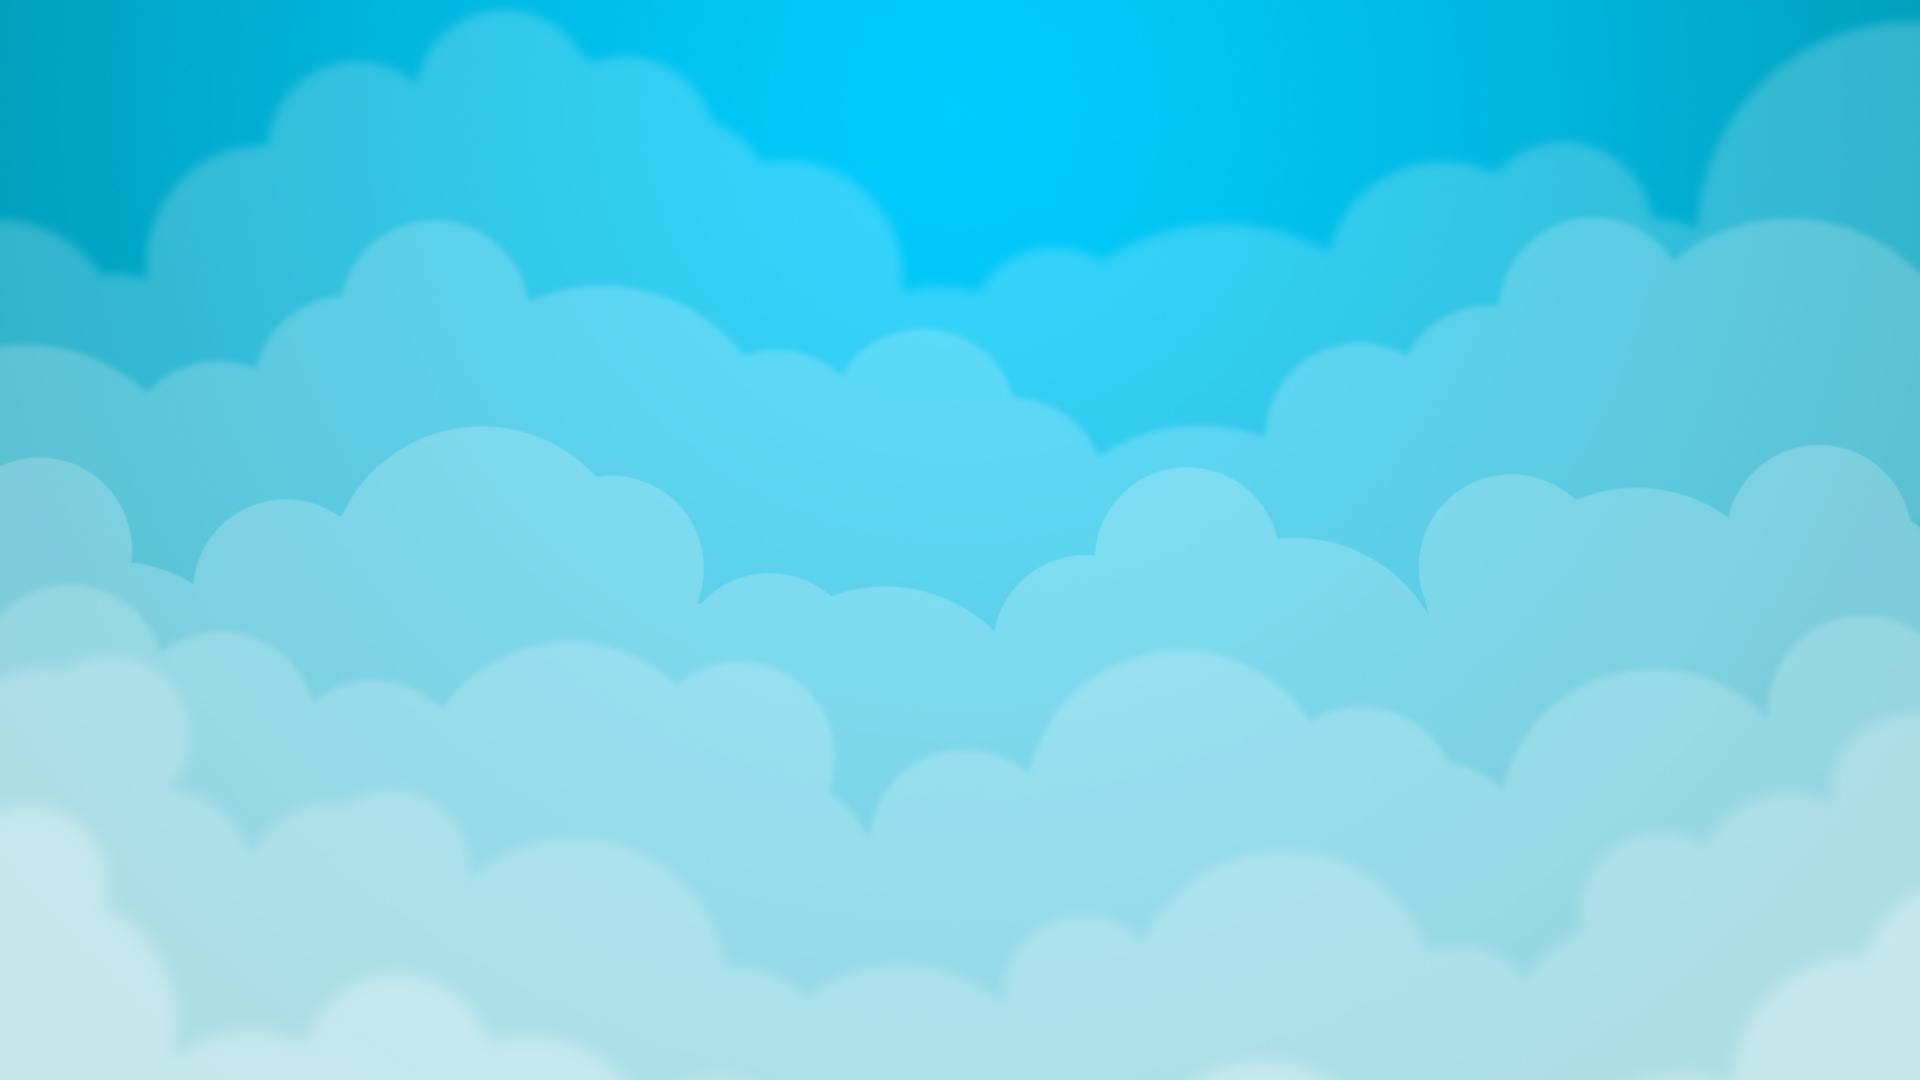 Cloudy Sky Background Clipart.